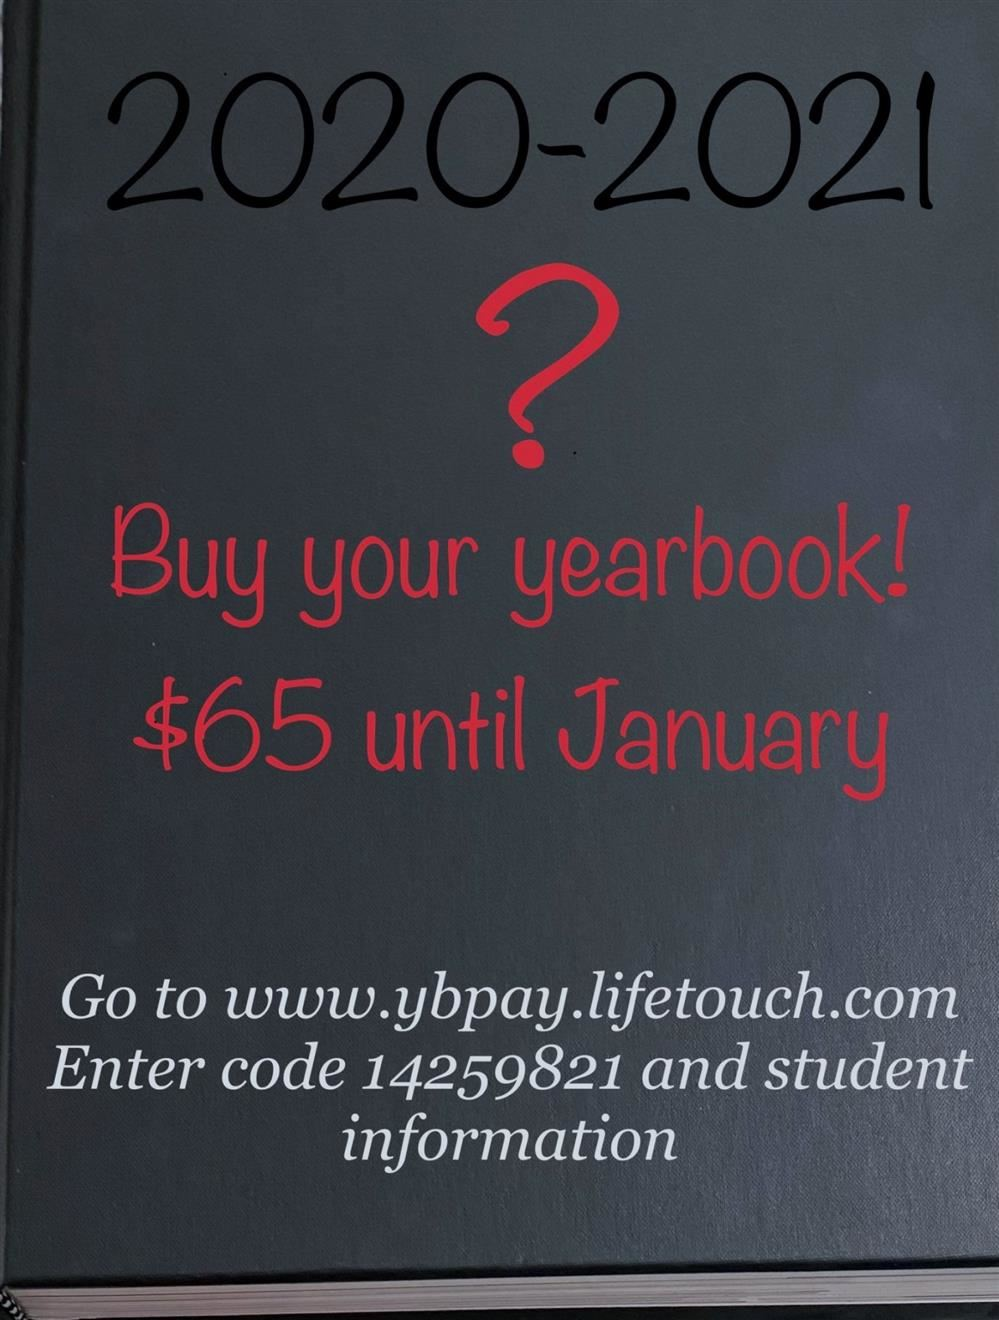 Yearbook with 20-21 buy through January